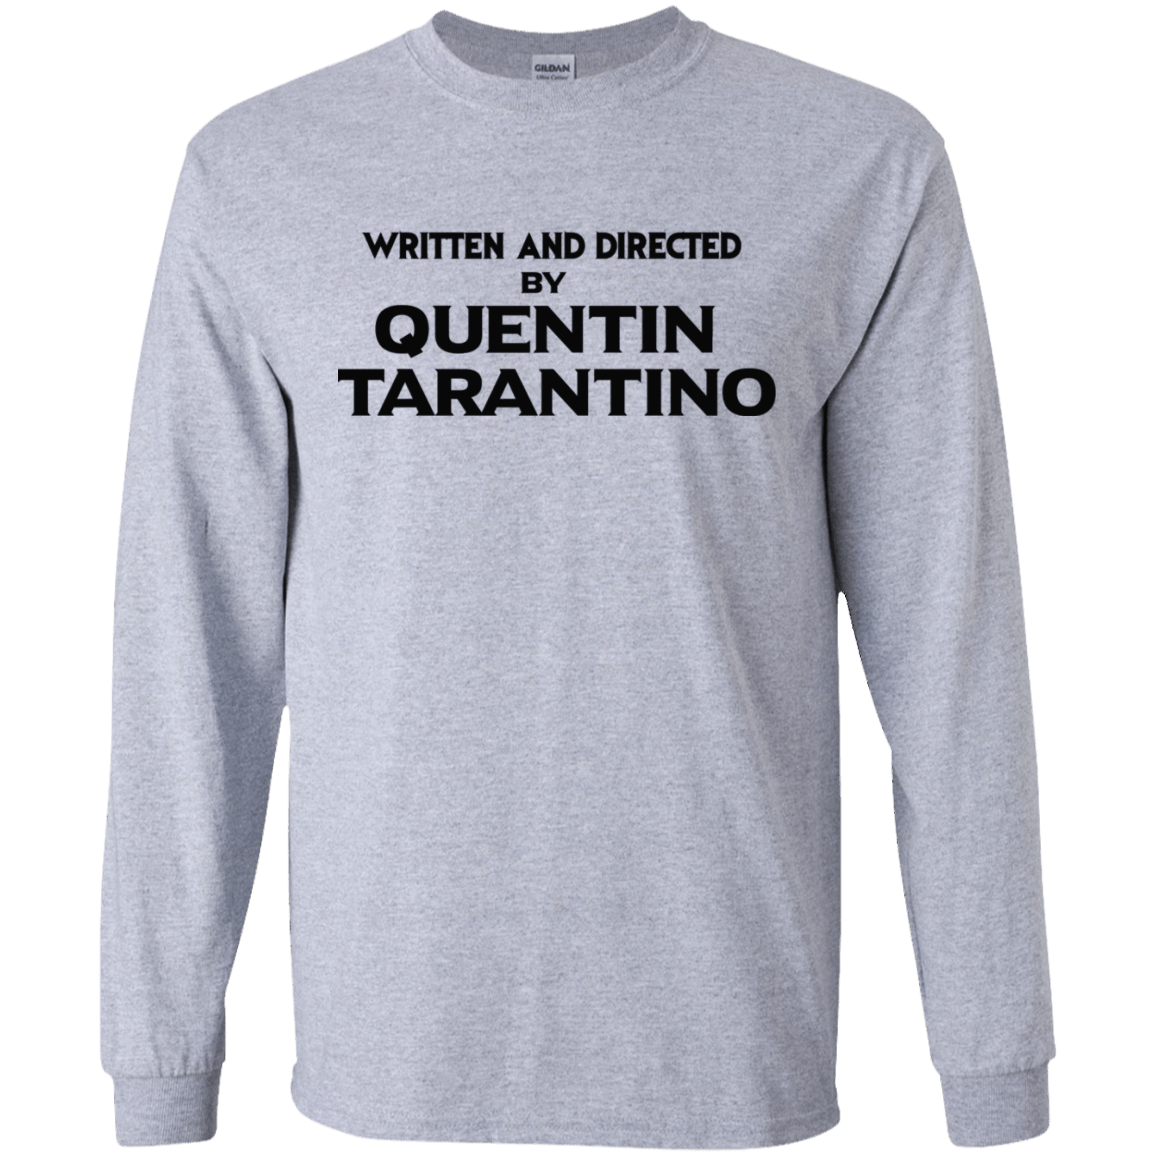 Written And Directed By Quentin Tarantino 30-188-71738999-335 - Tee Ript